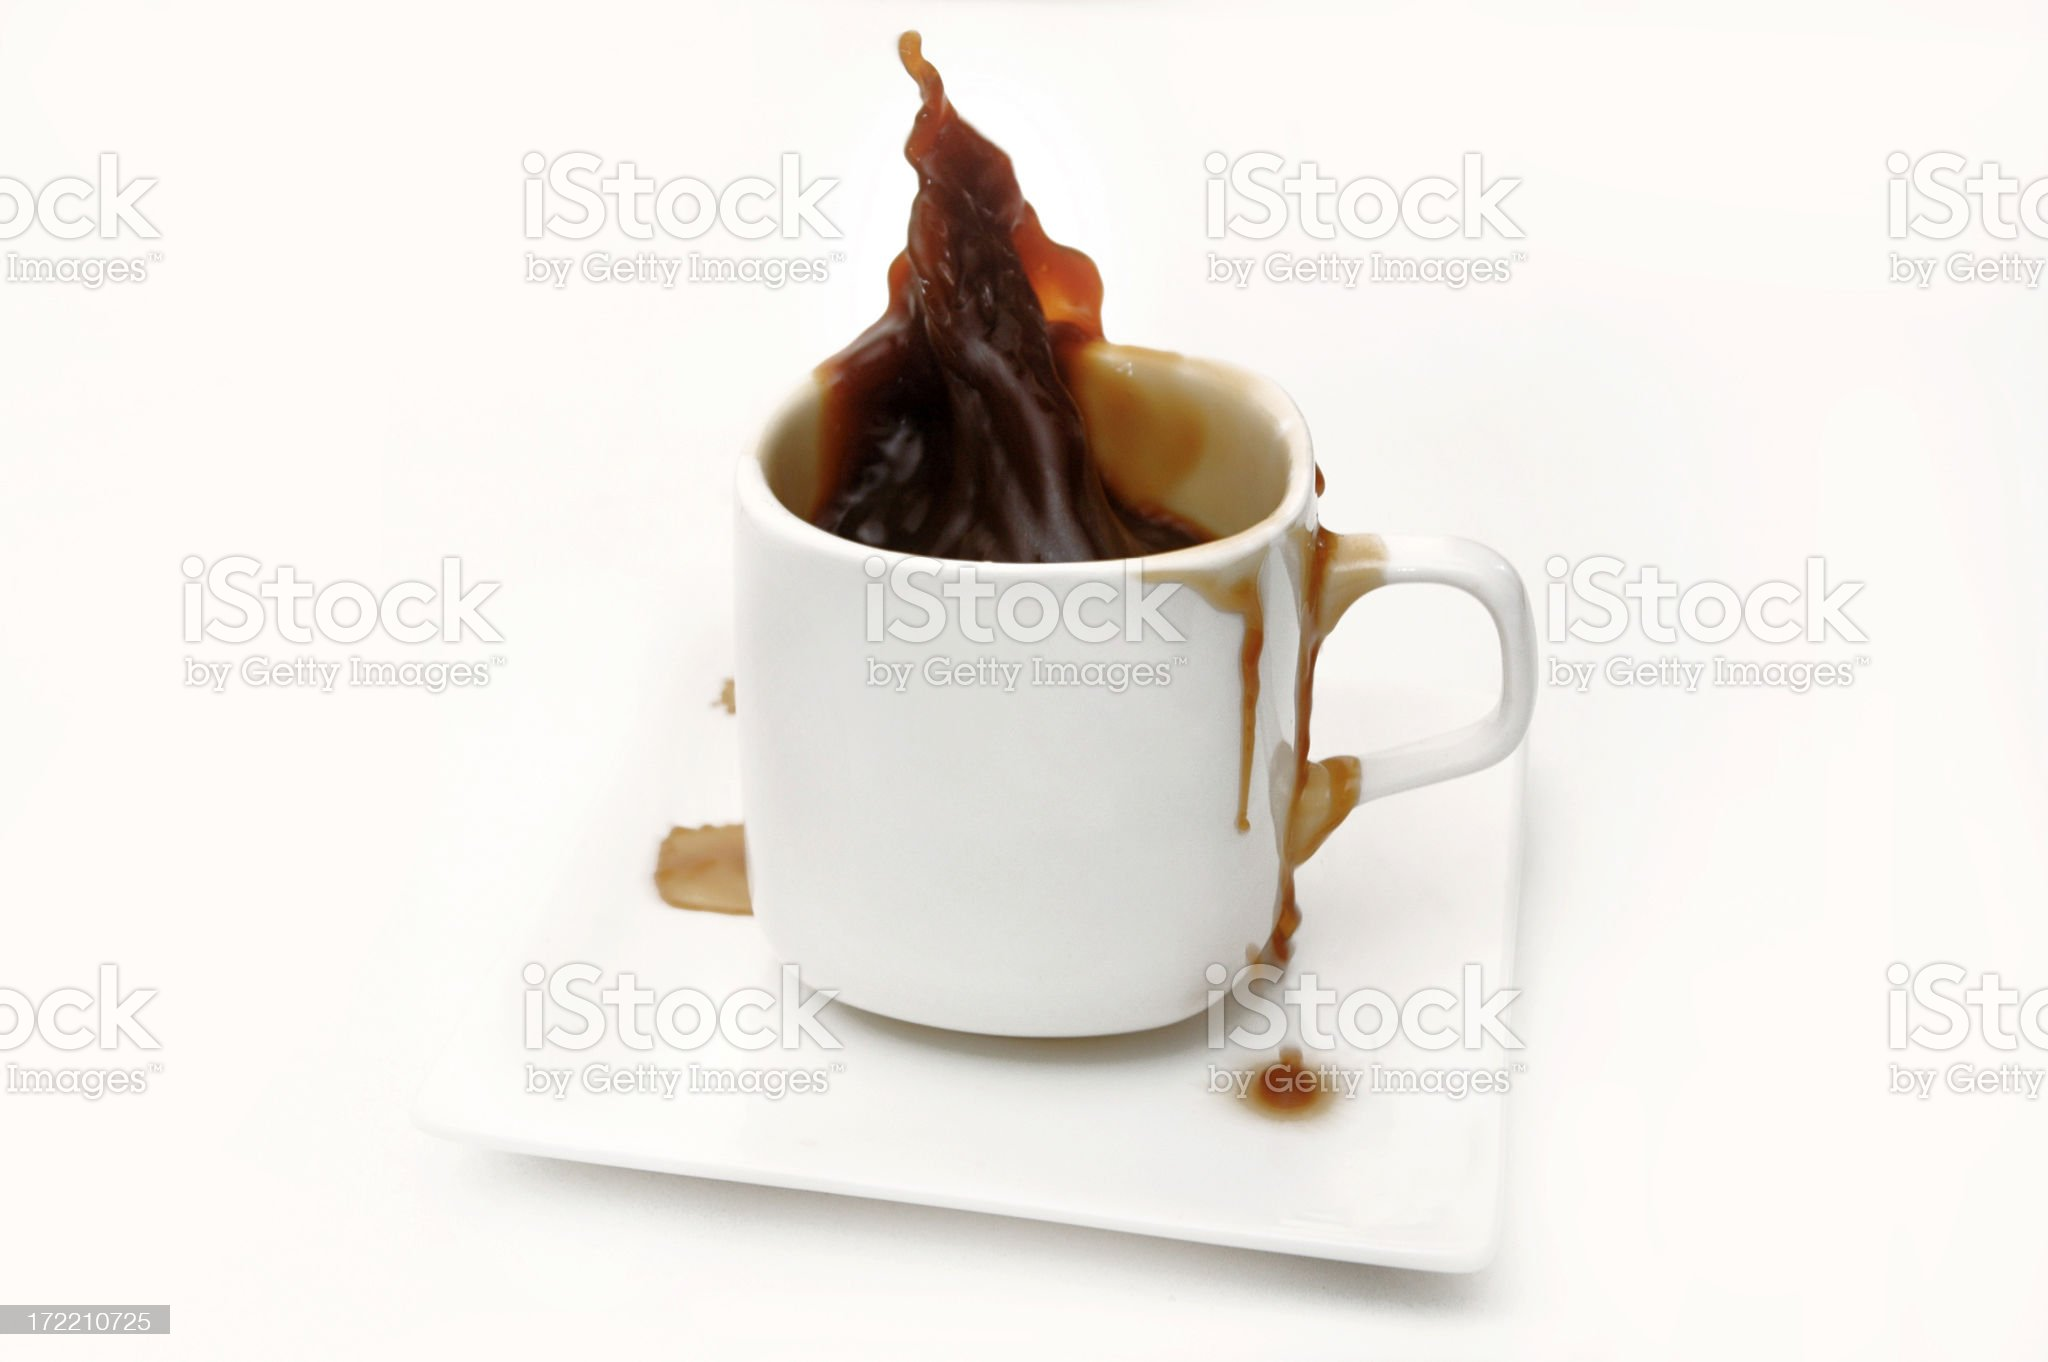 Spill royalty-free stock photo